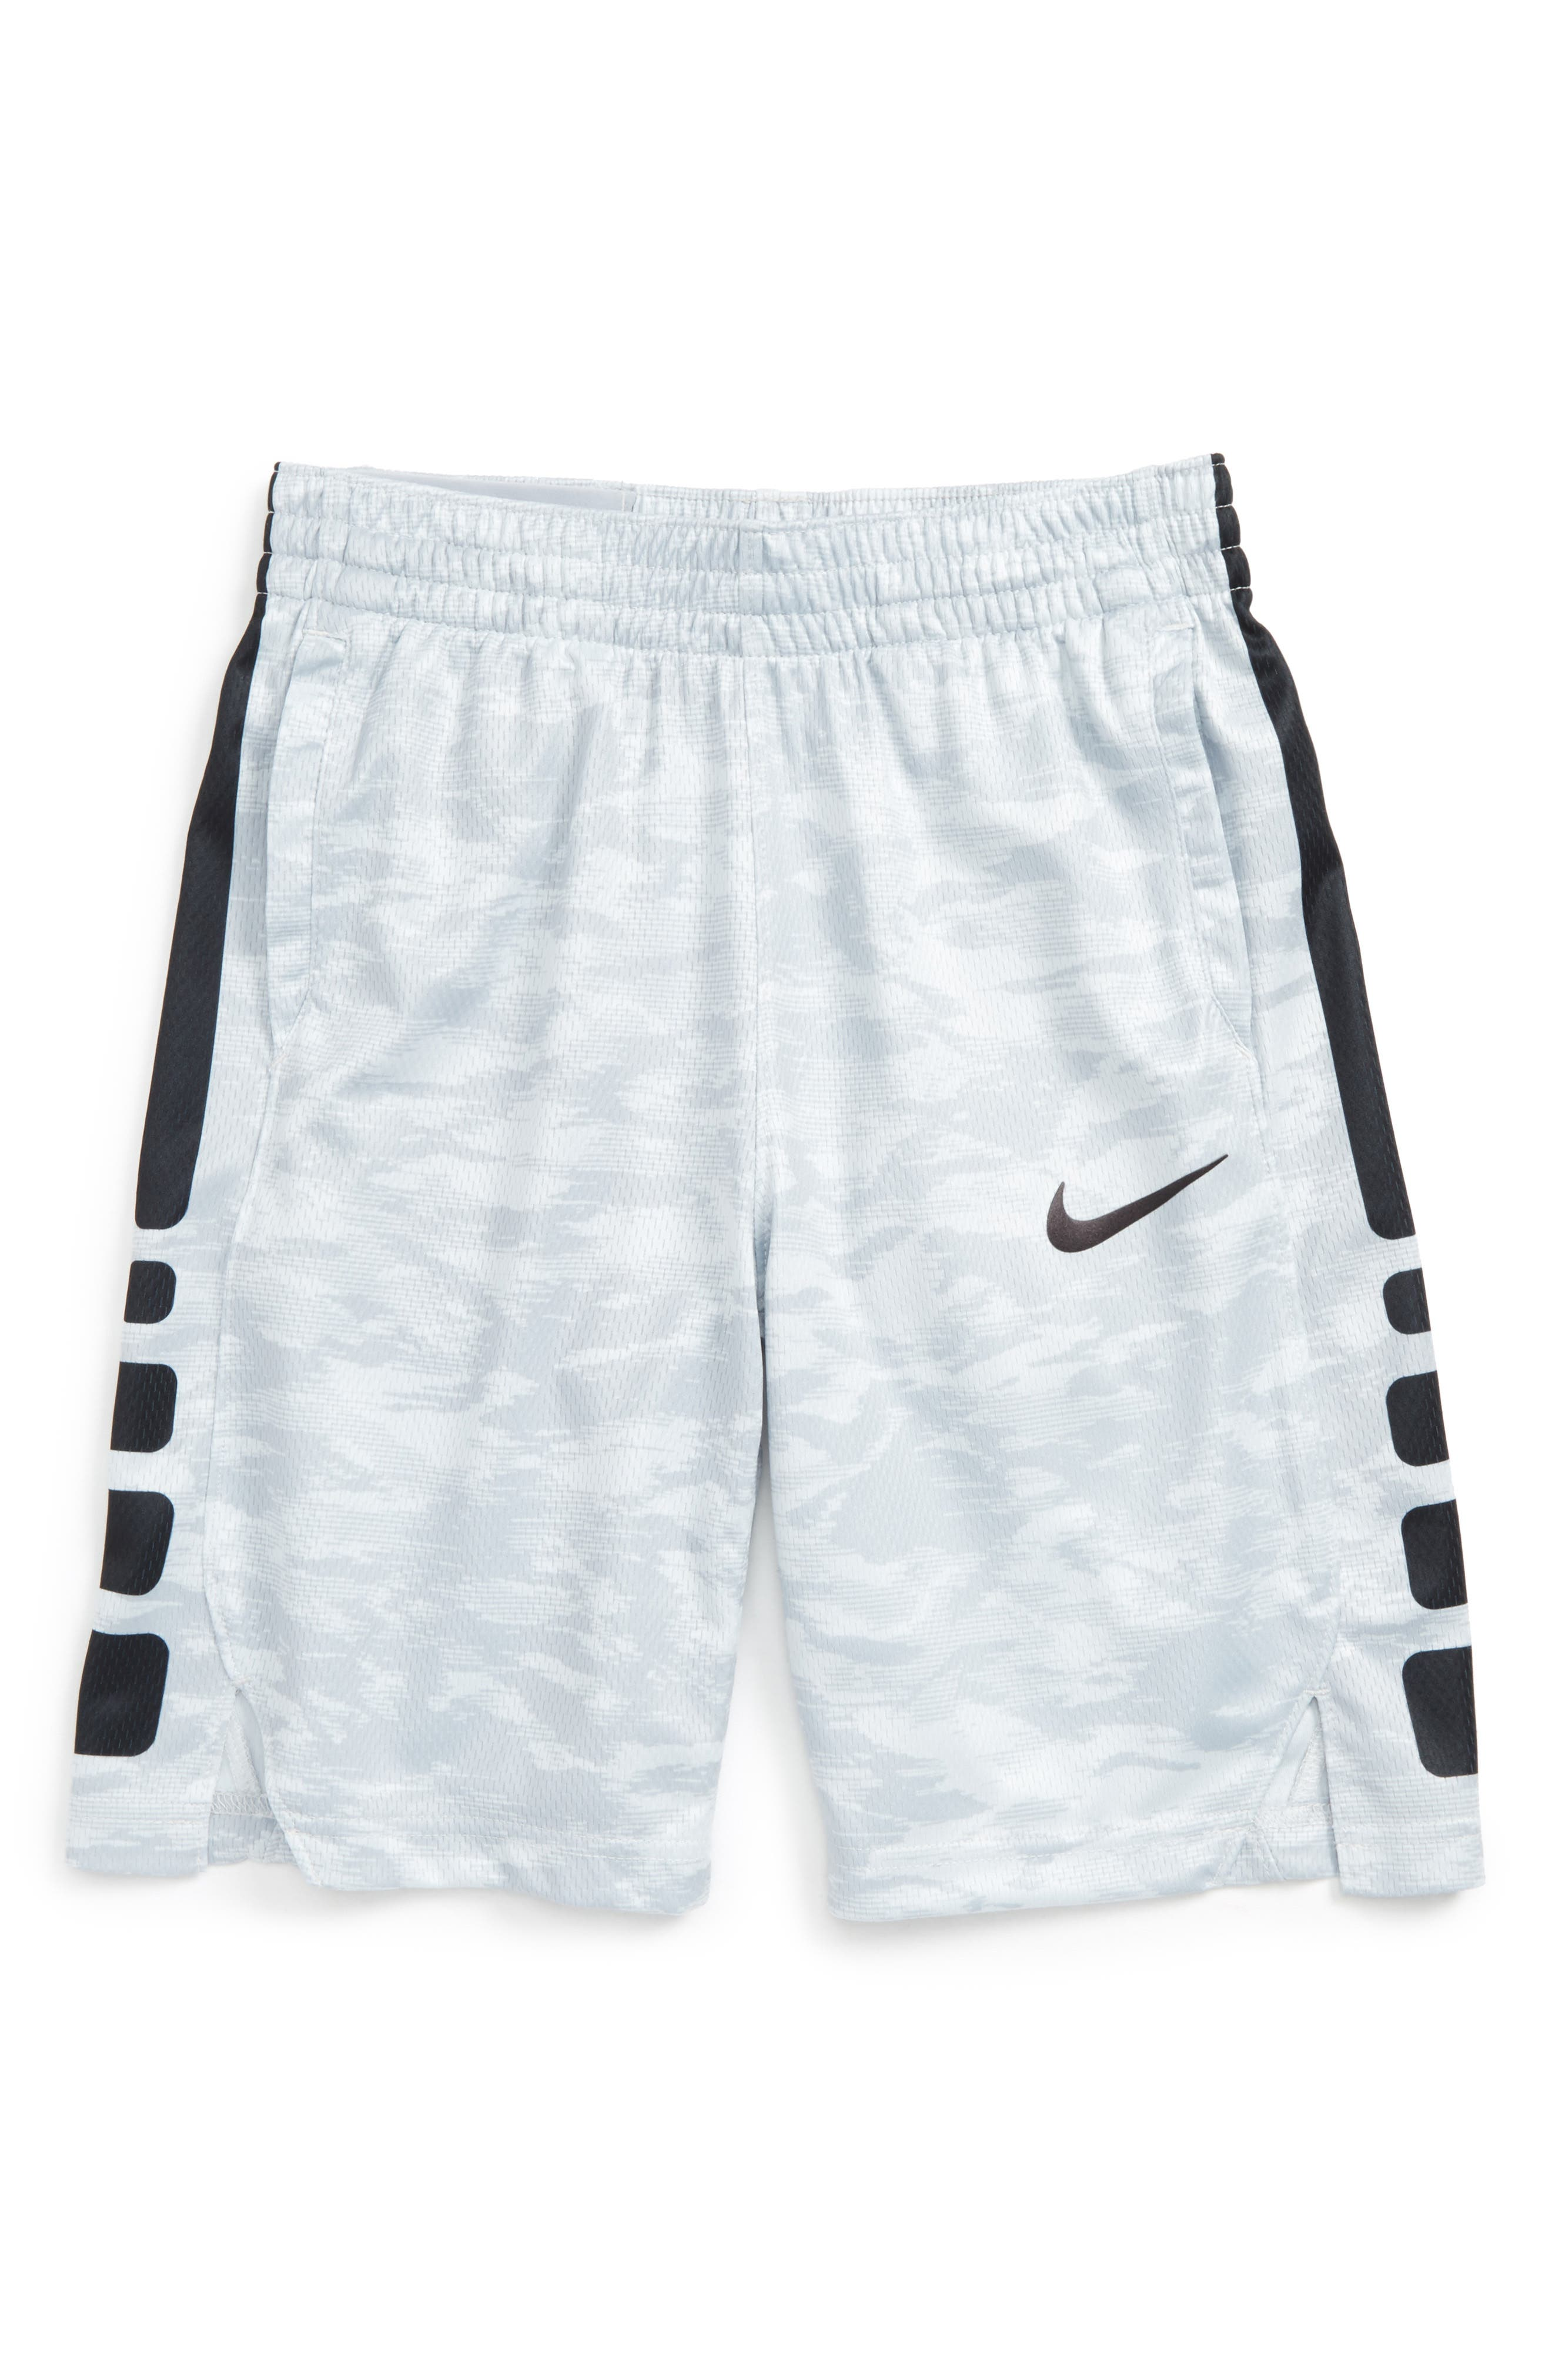 Dry Elite Basketball Shorts,                         Main,                         color, Wlfgry/ Black